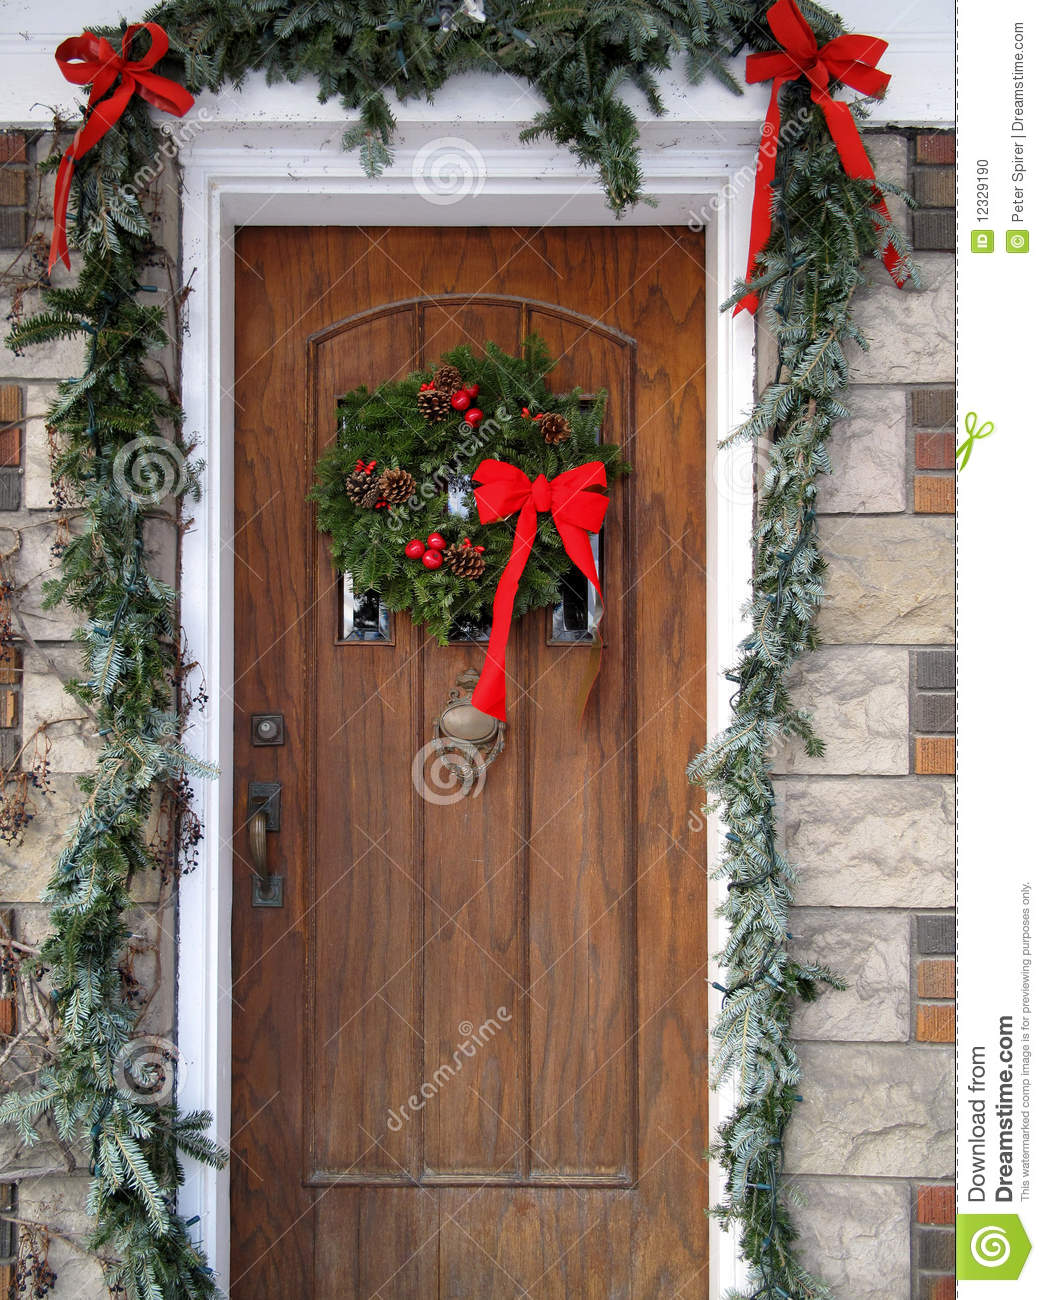 Christmas front door clipart.